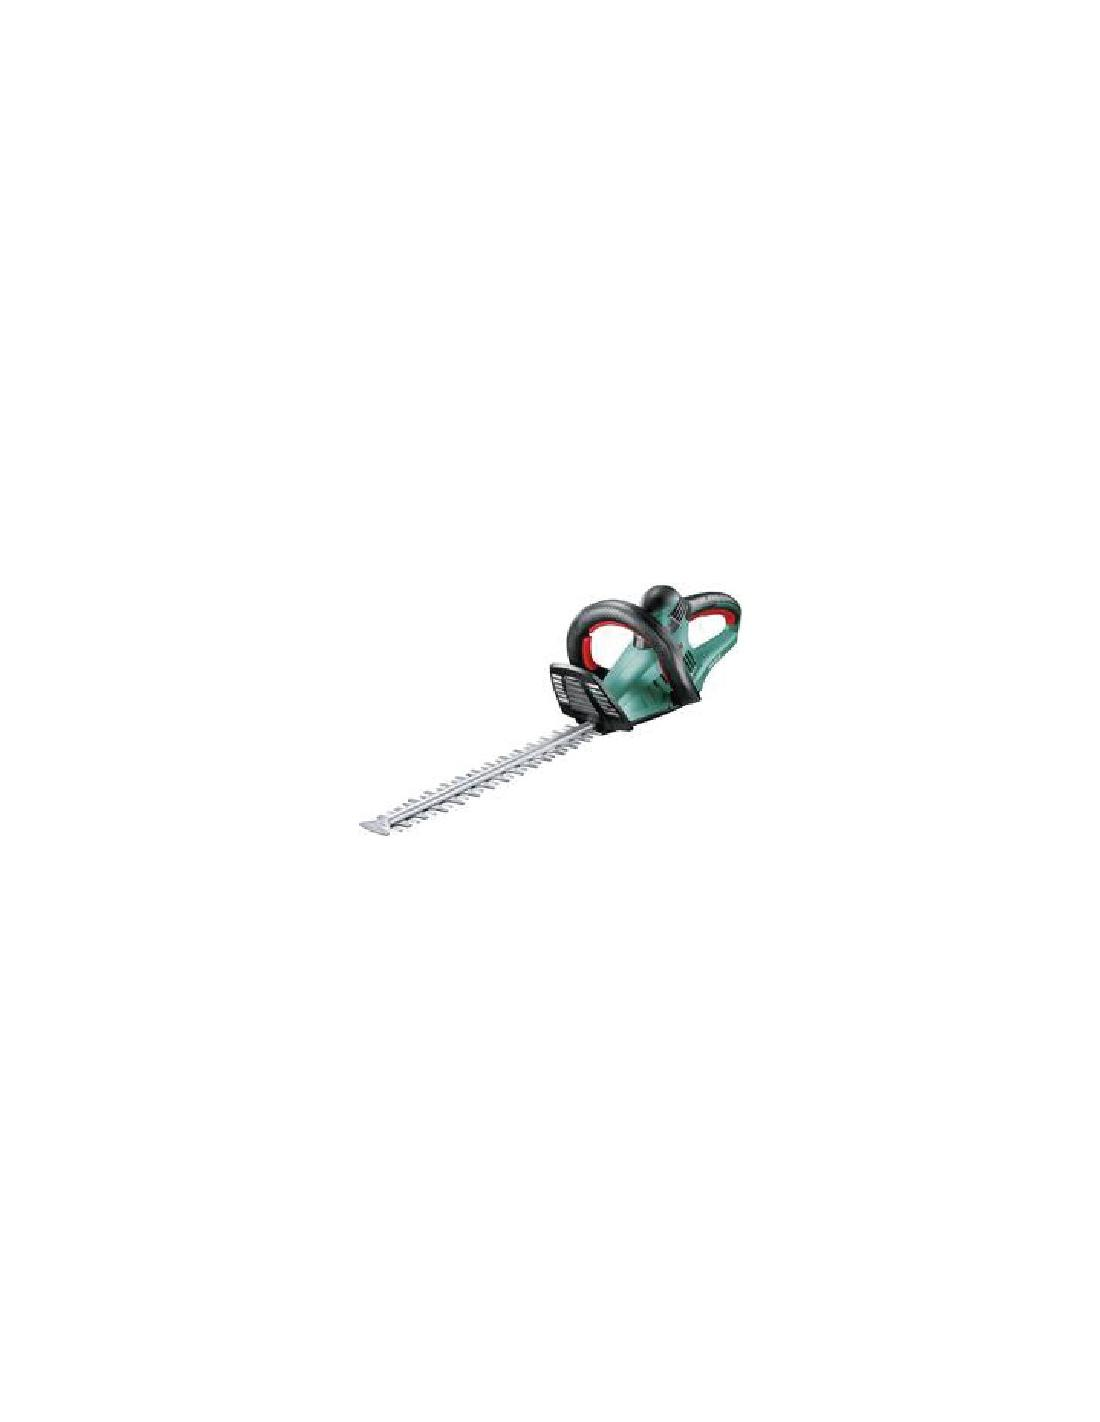 TAILLE HAIES FILAIRE AHS BOSCH - 1